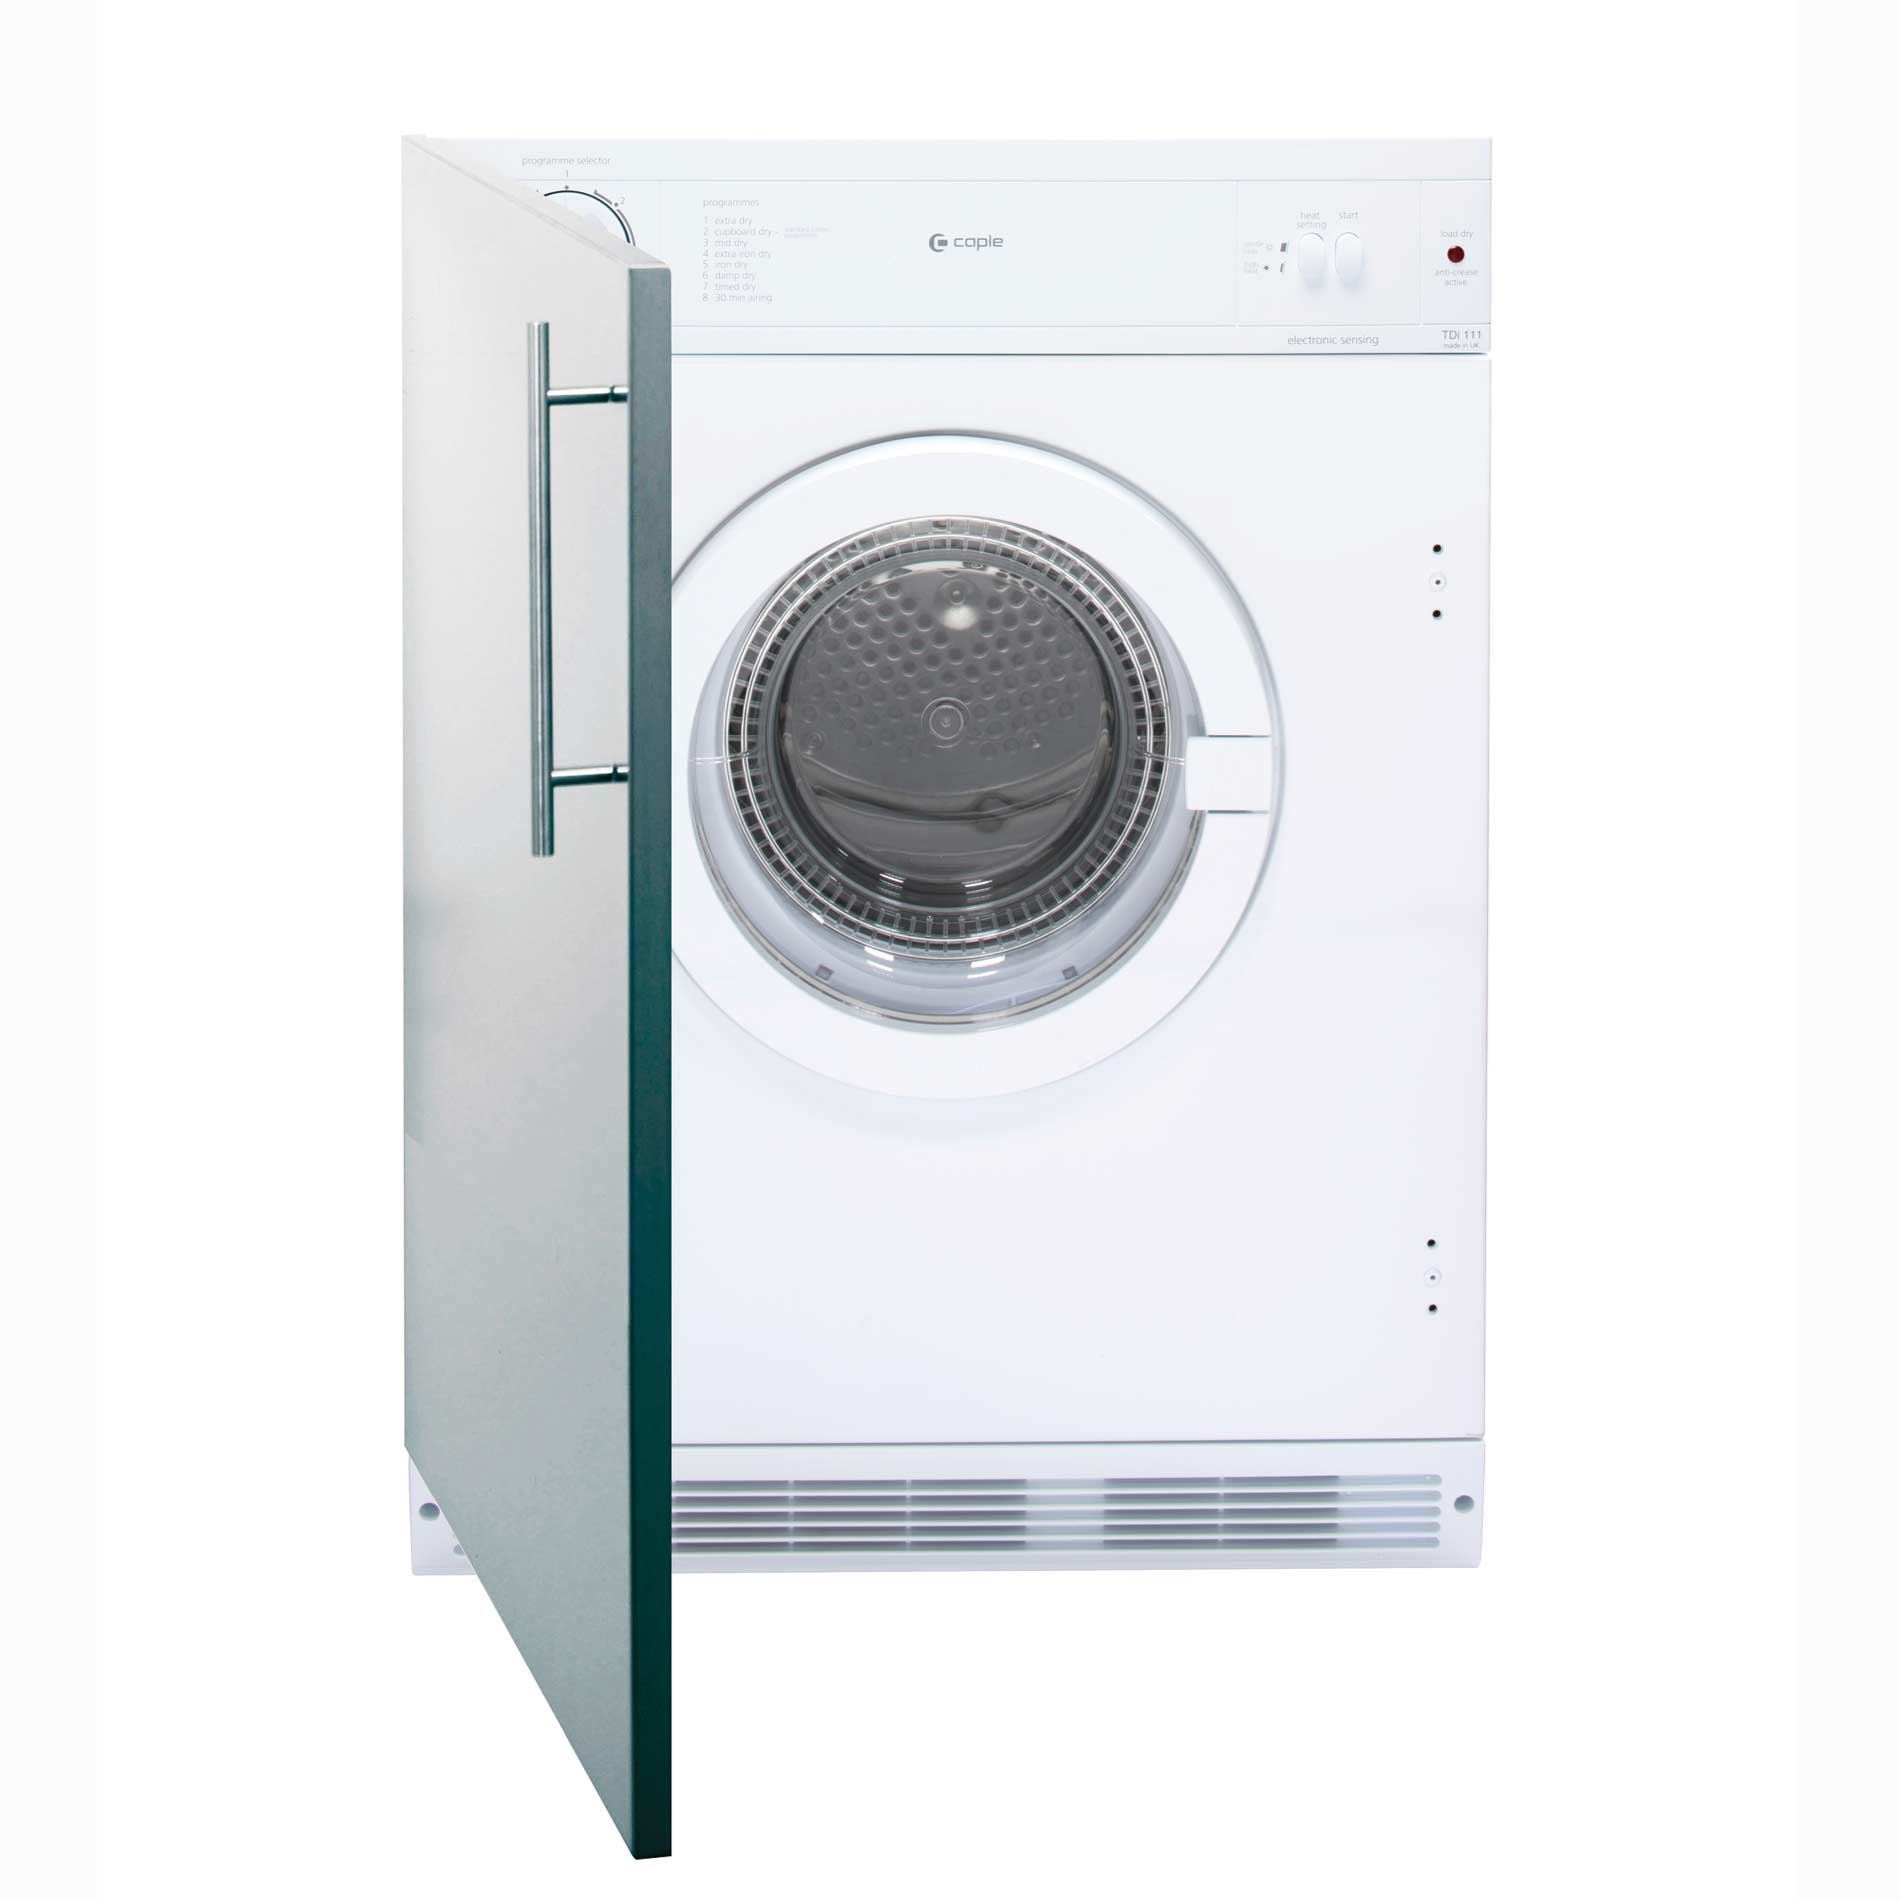 Picture of TDi111 Built-in Tumble Dryer